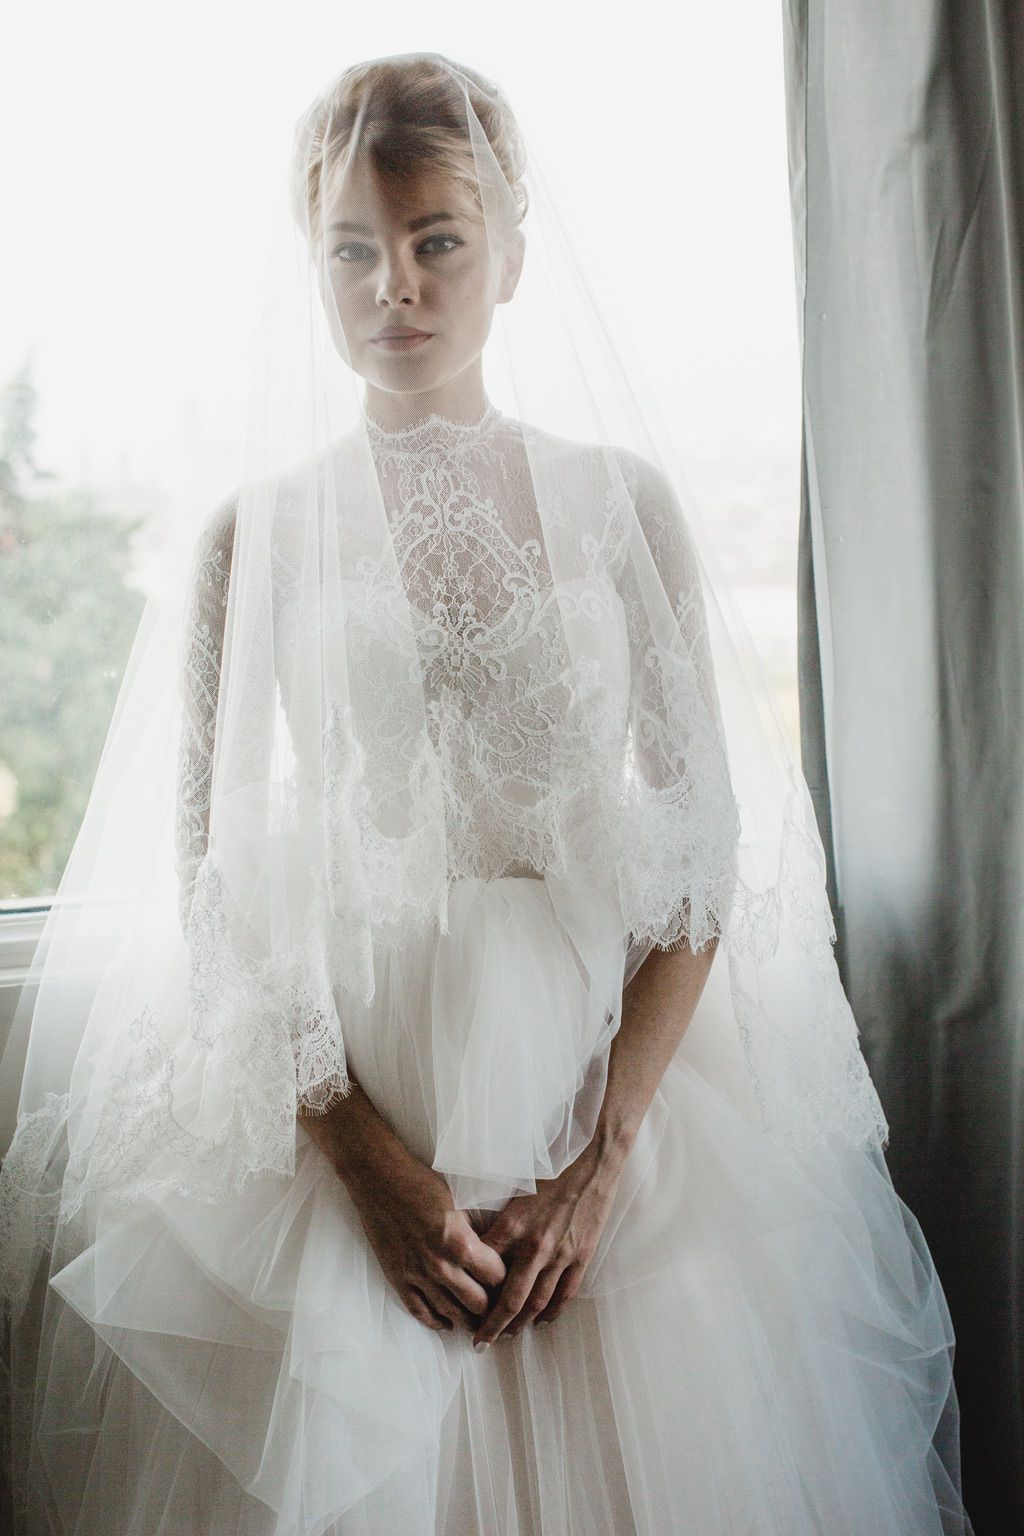 bride with veil and wedding dress portrait real wedding in Firenze Italy